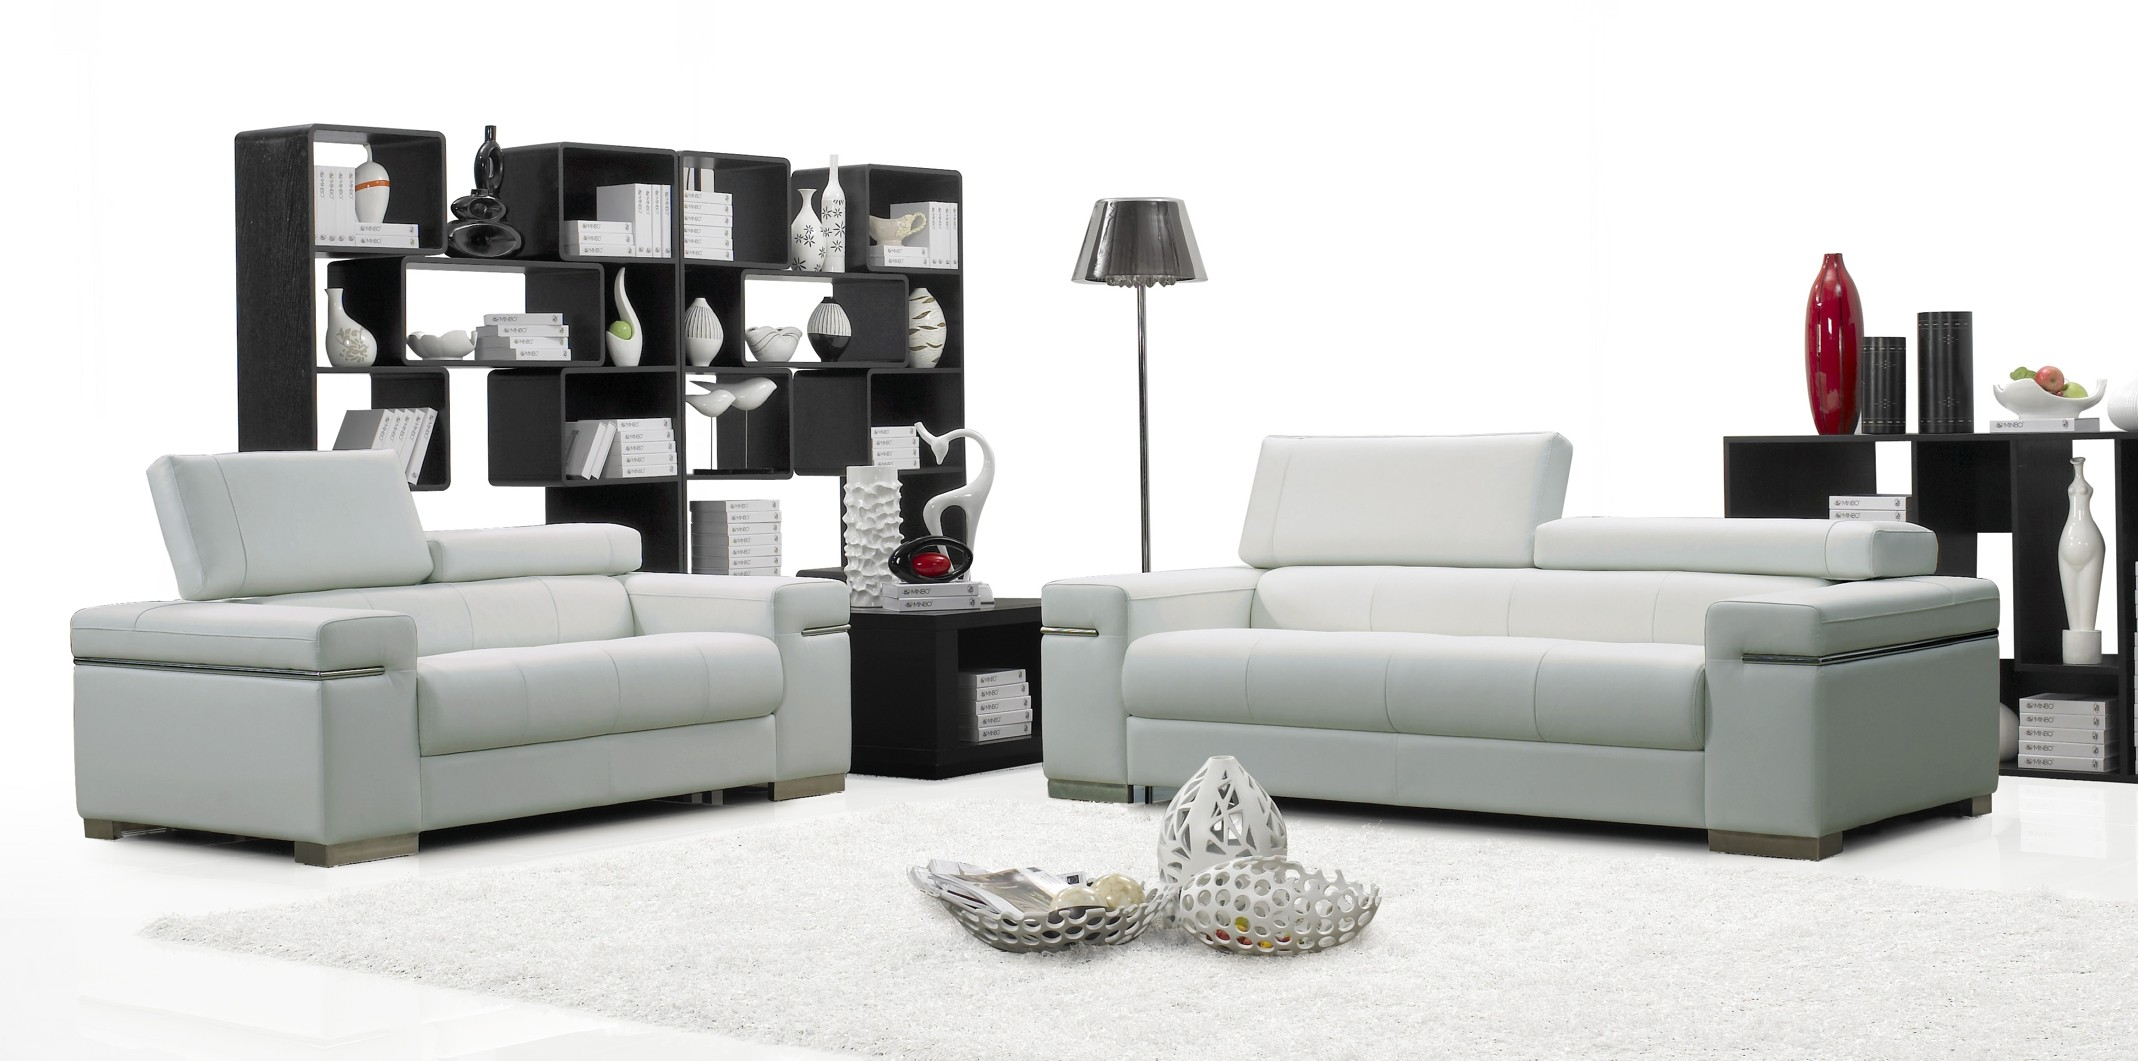 Modern sofa sets white modern sofa set vg 74 leather sofas Modern living room furniture ideas